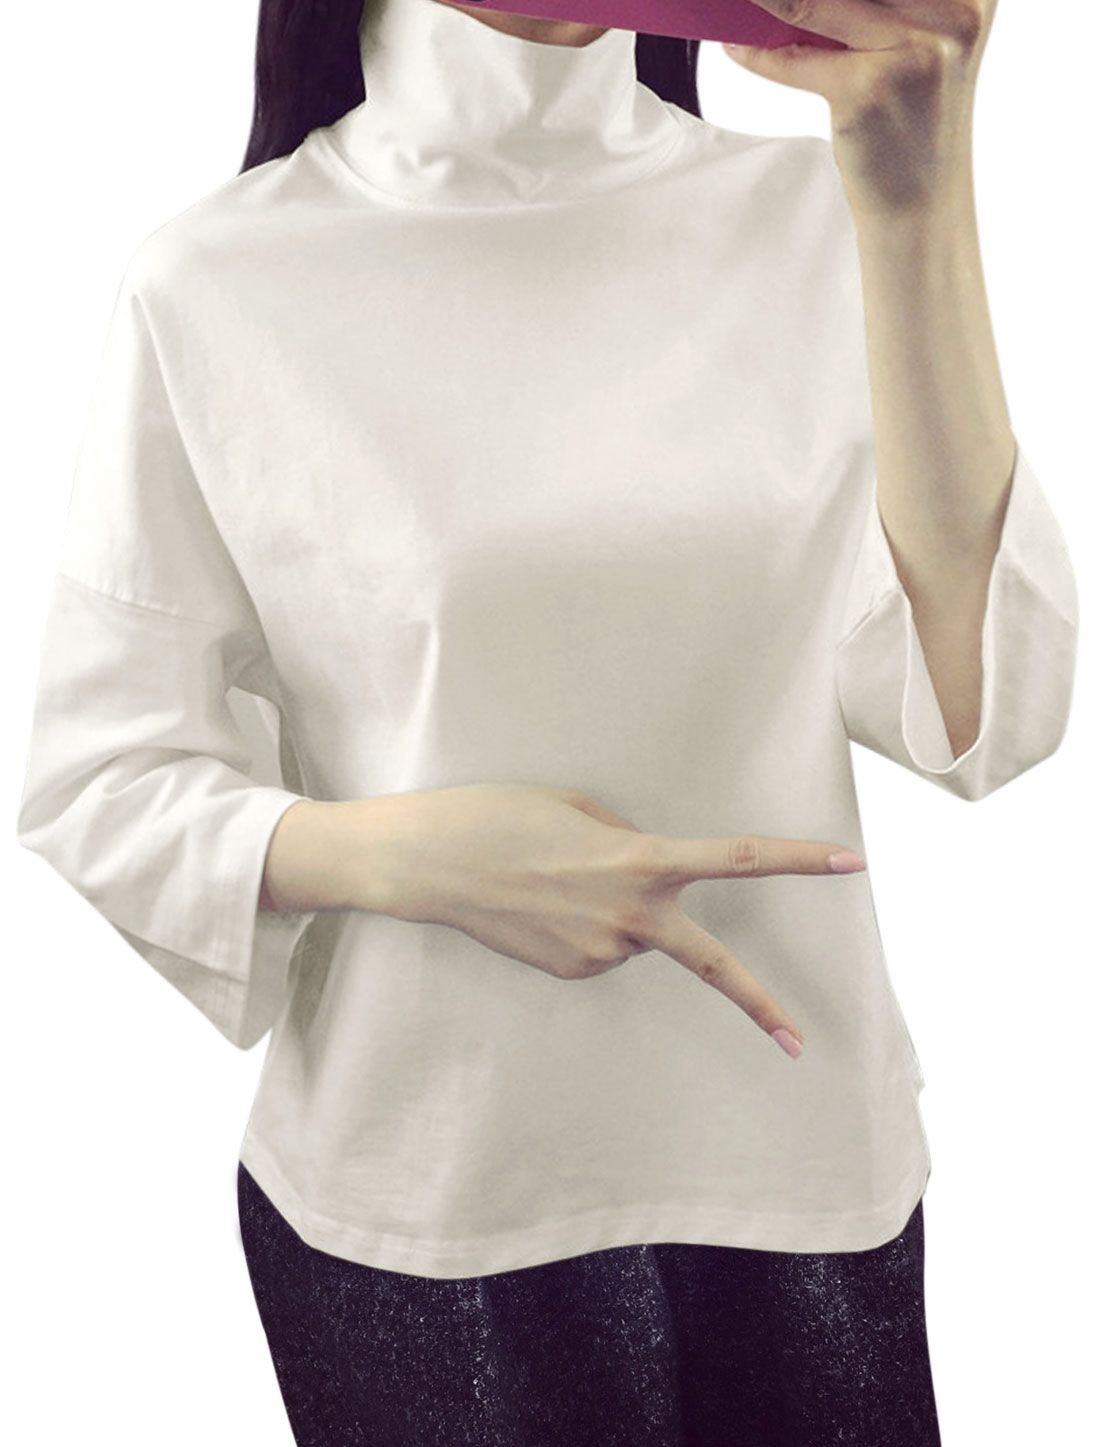 Women 3/4 Bat Sleeves Convertible Collar Tee Shirt White XS